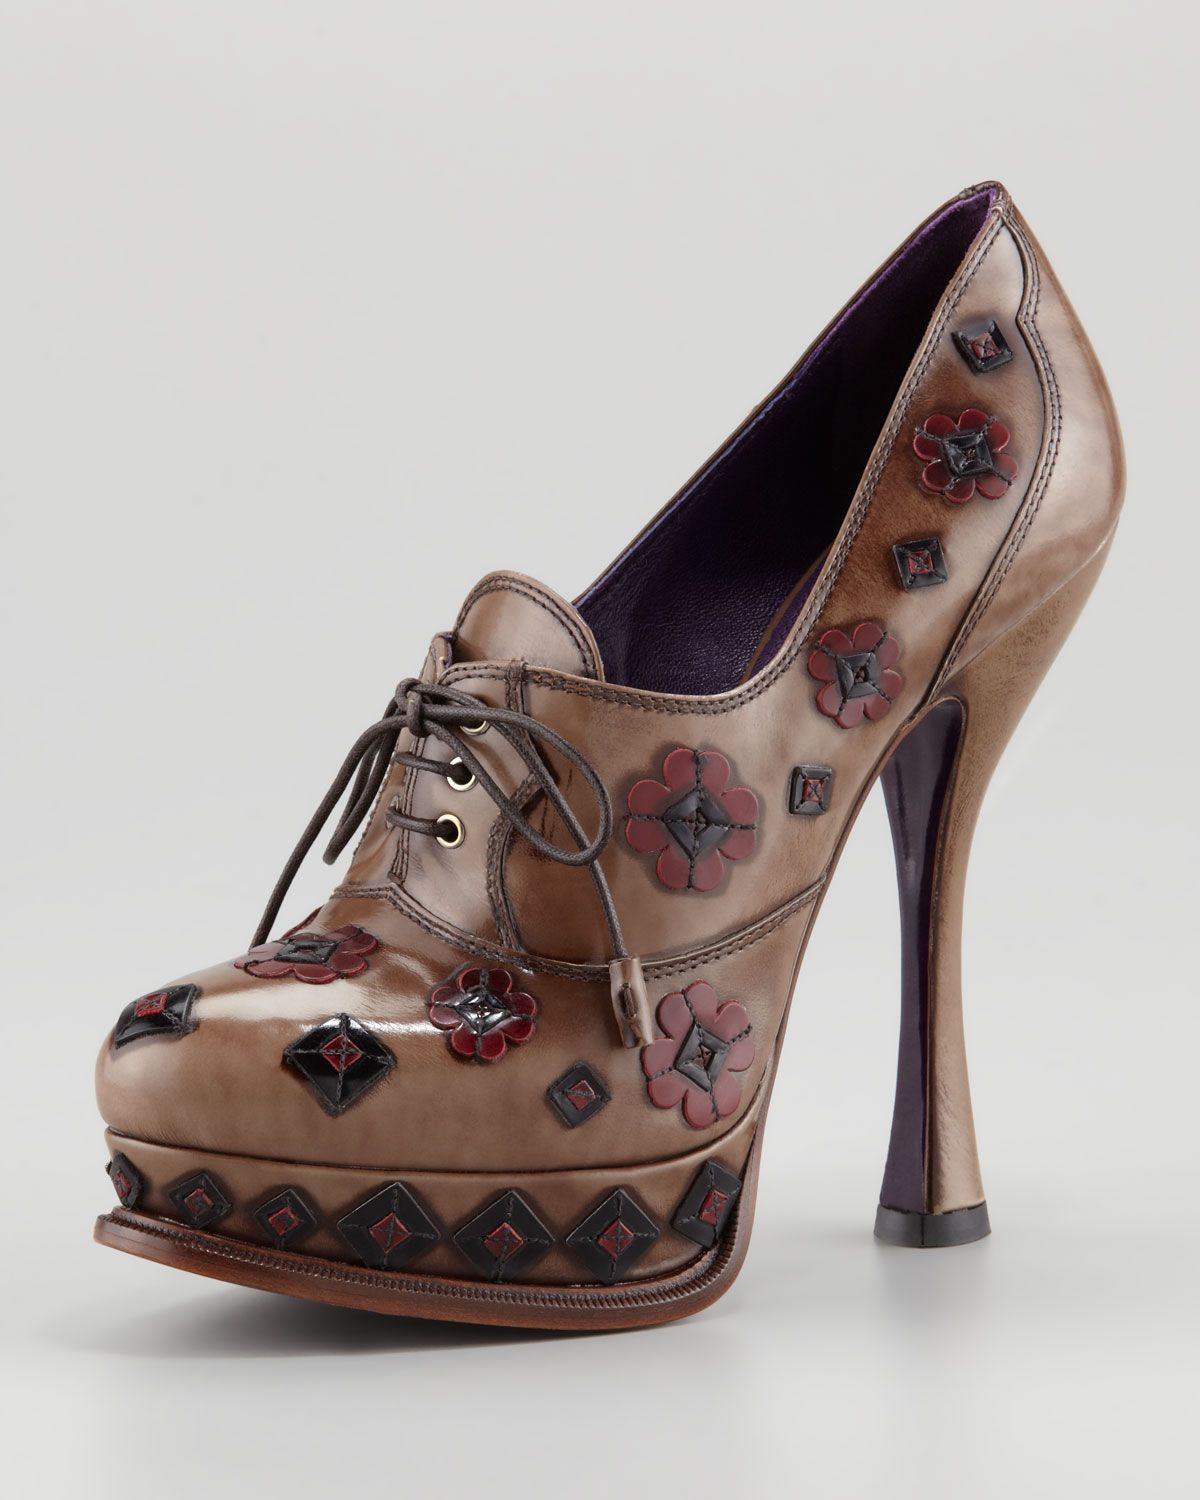 cheap footlocker Prada Floral Platform Pumps sale countdown package clearance for nice free shipping shop offer R7BB7w6ab4